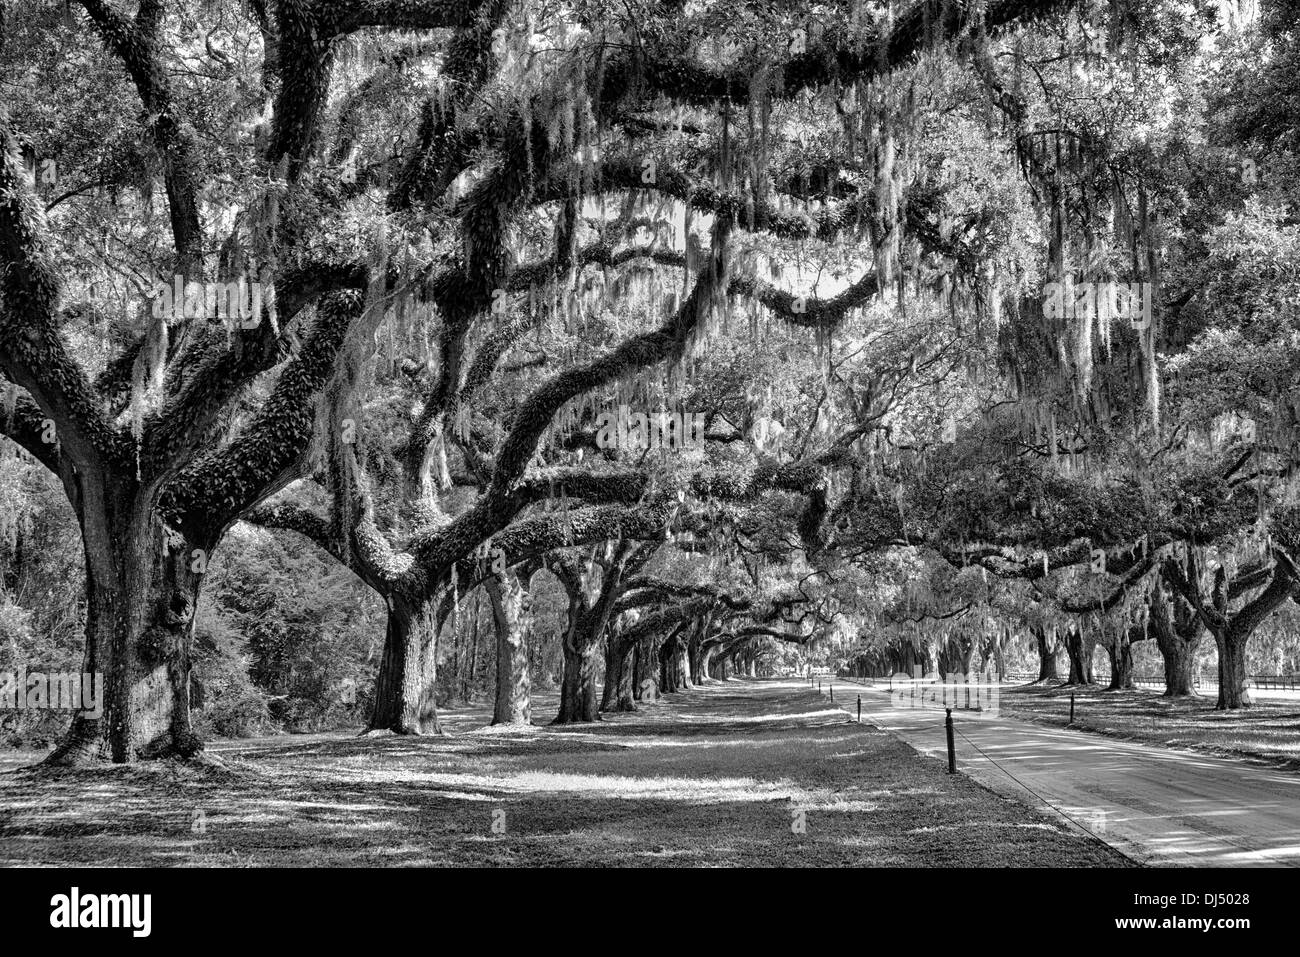 Avenue of oaks at boone hall plantation in charleston south carolina in black and white